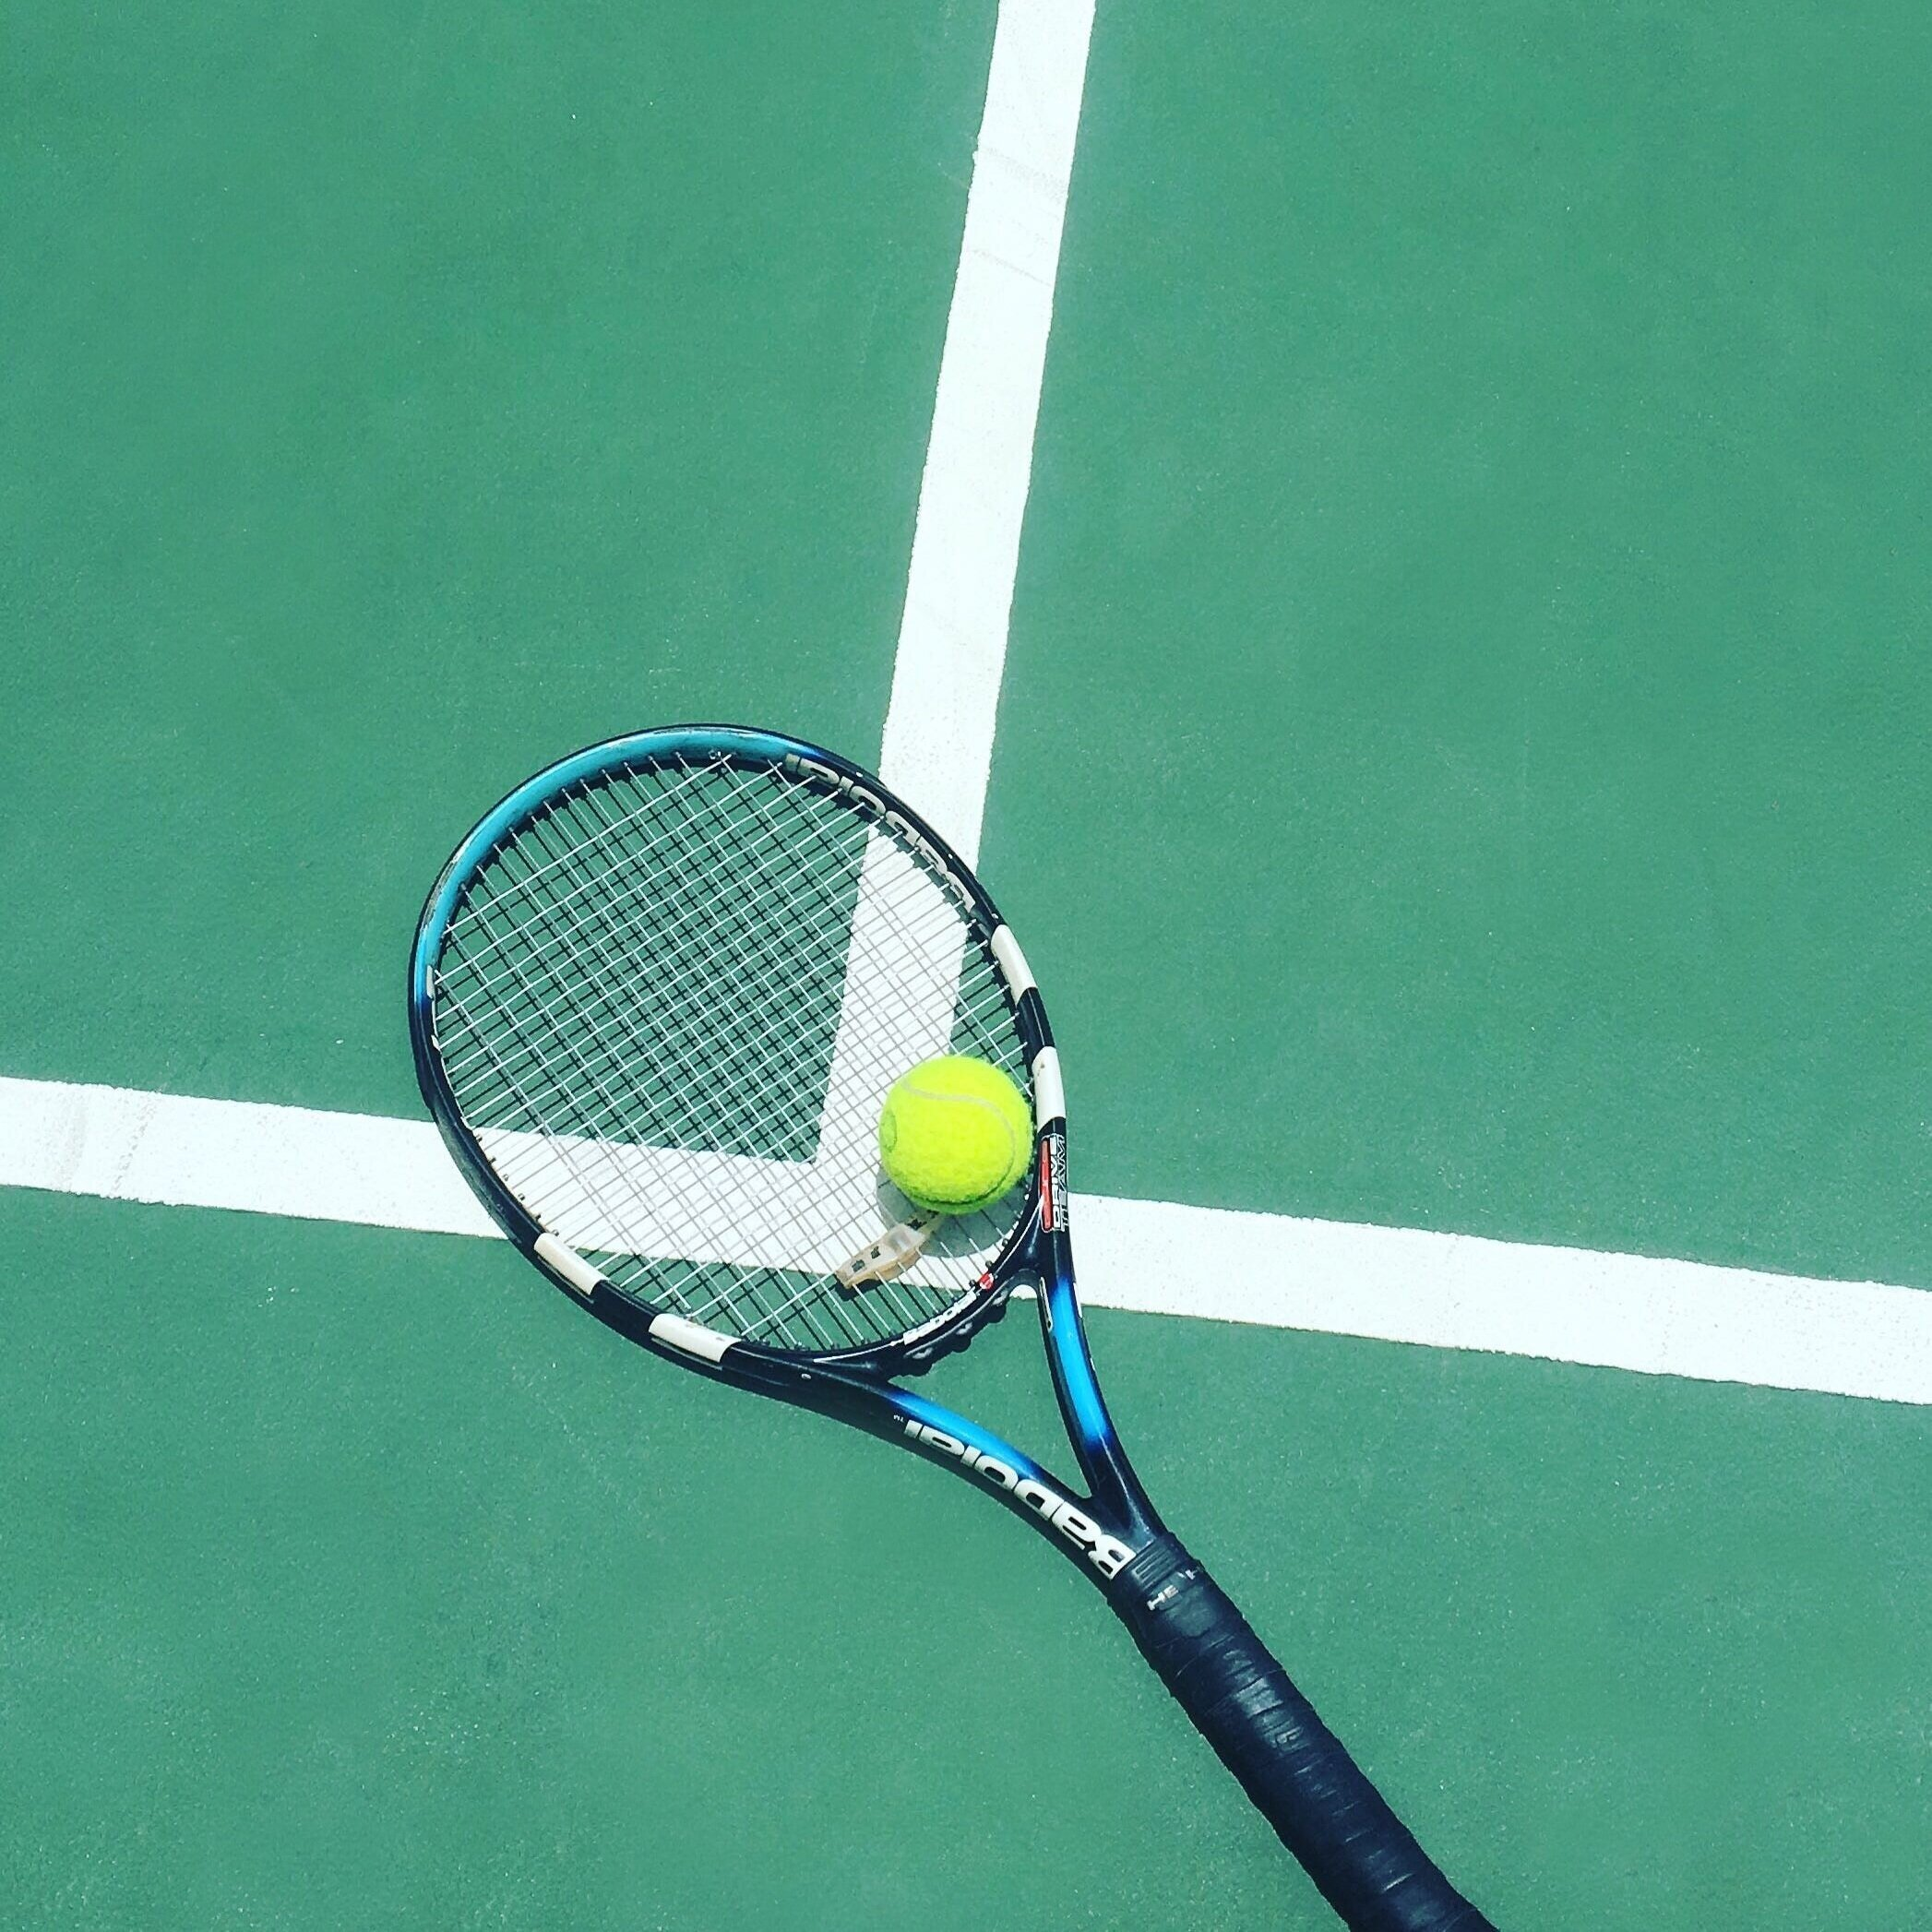 TENNIS - The summer was full of tennis events and we hope you managed to access some of the free events that were taking place?We are talking about tennis this month because a new National Tennis Academy has just opened in Loughborough at the University